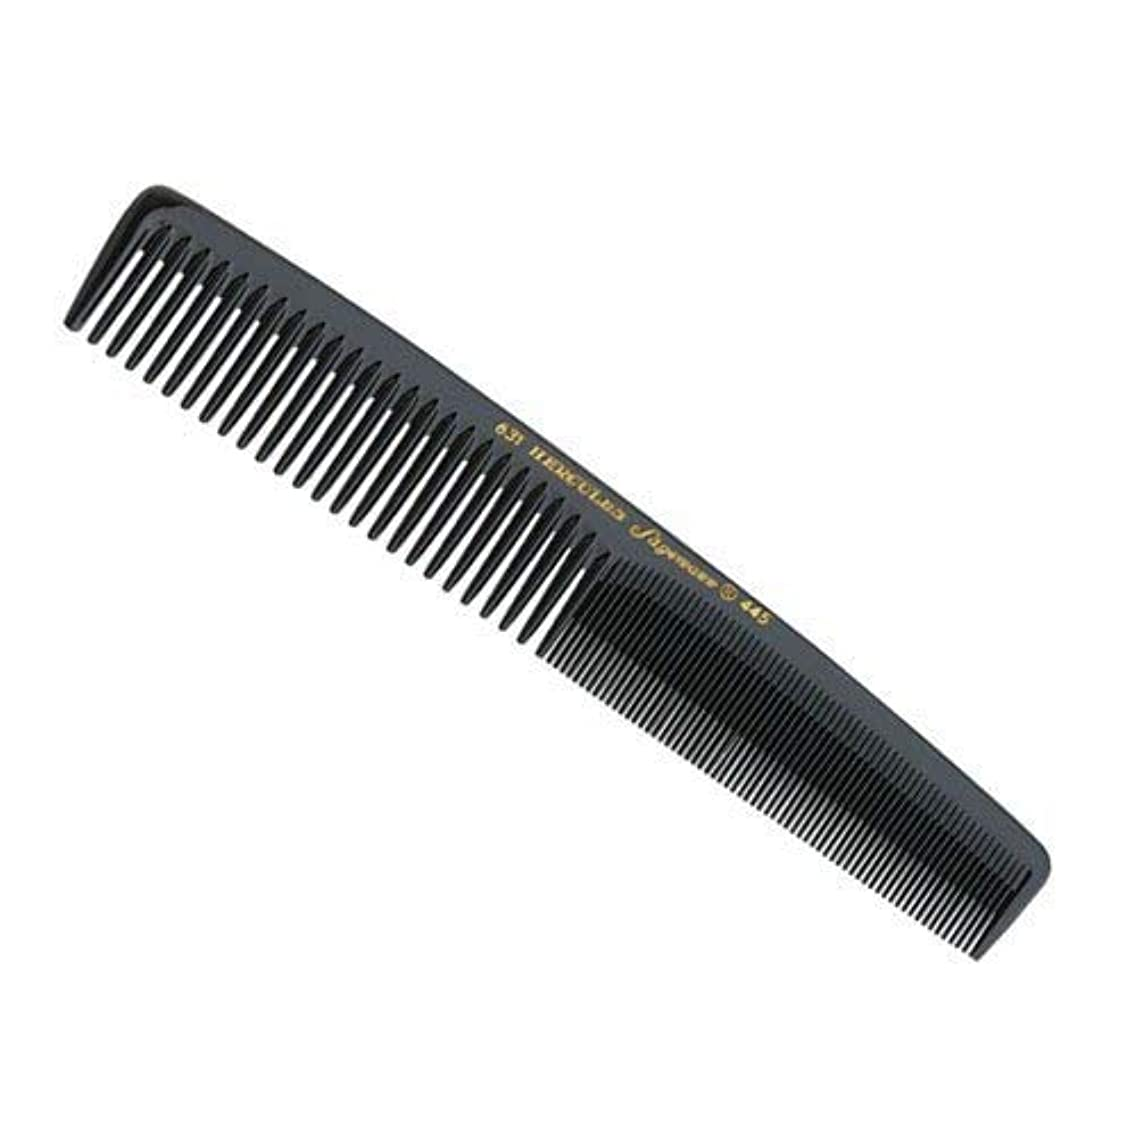 Hercules Sagemann Medium Waver Ladies Hair Comb, Length-17.8 cm [並行輸入品]